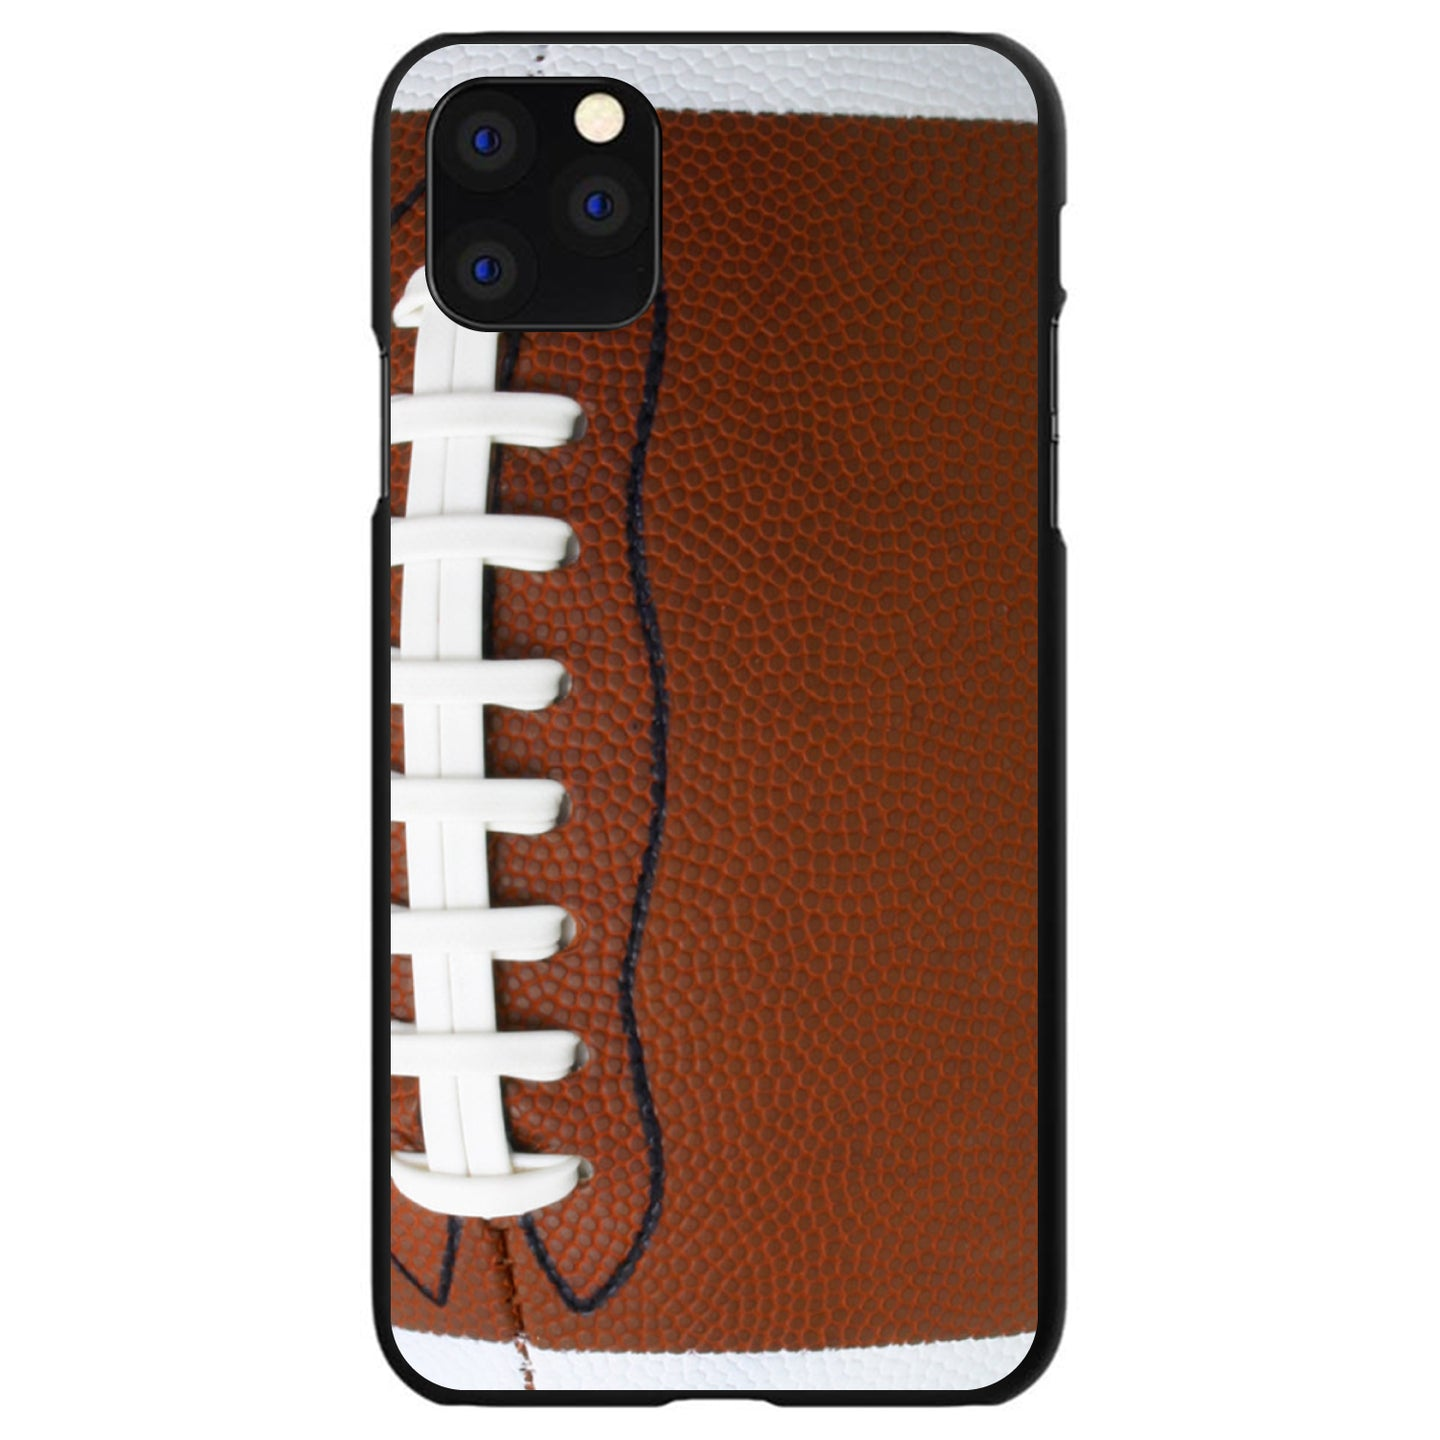 DistinctInk® Hard Plastic Snap-On Case for Apple iPhone - Football Texture Photo Laces